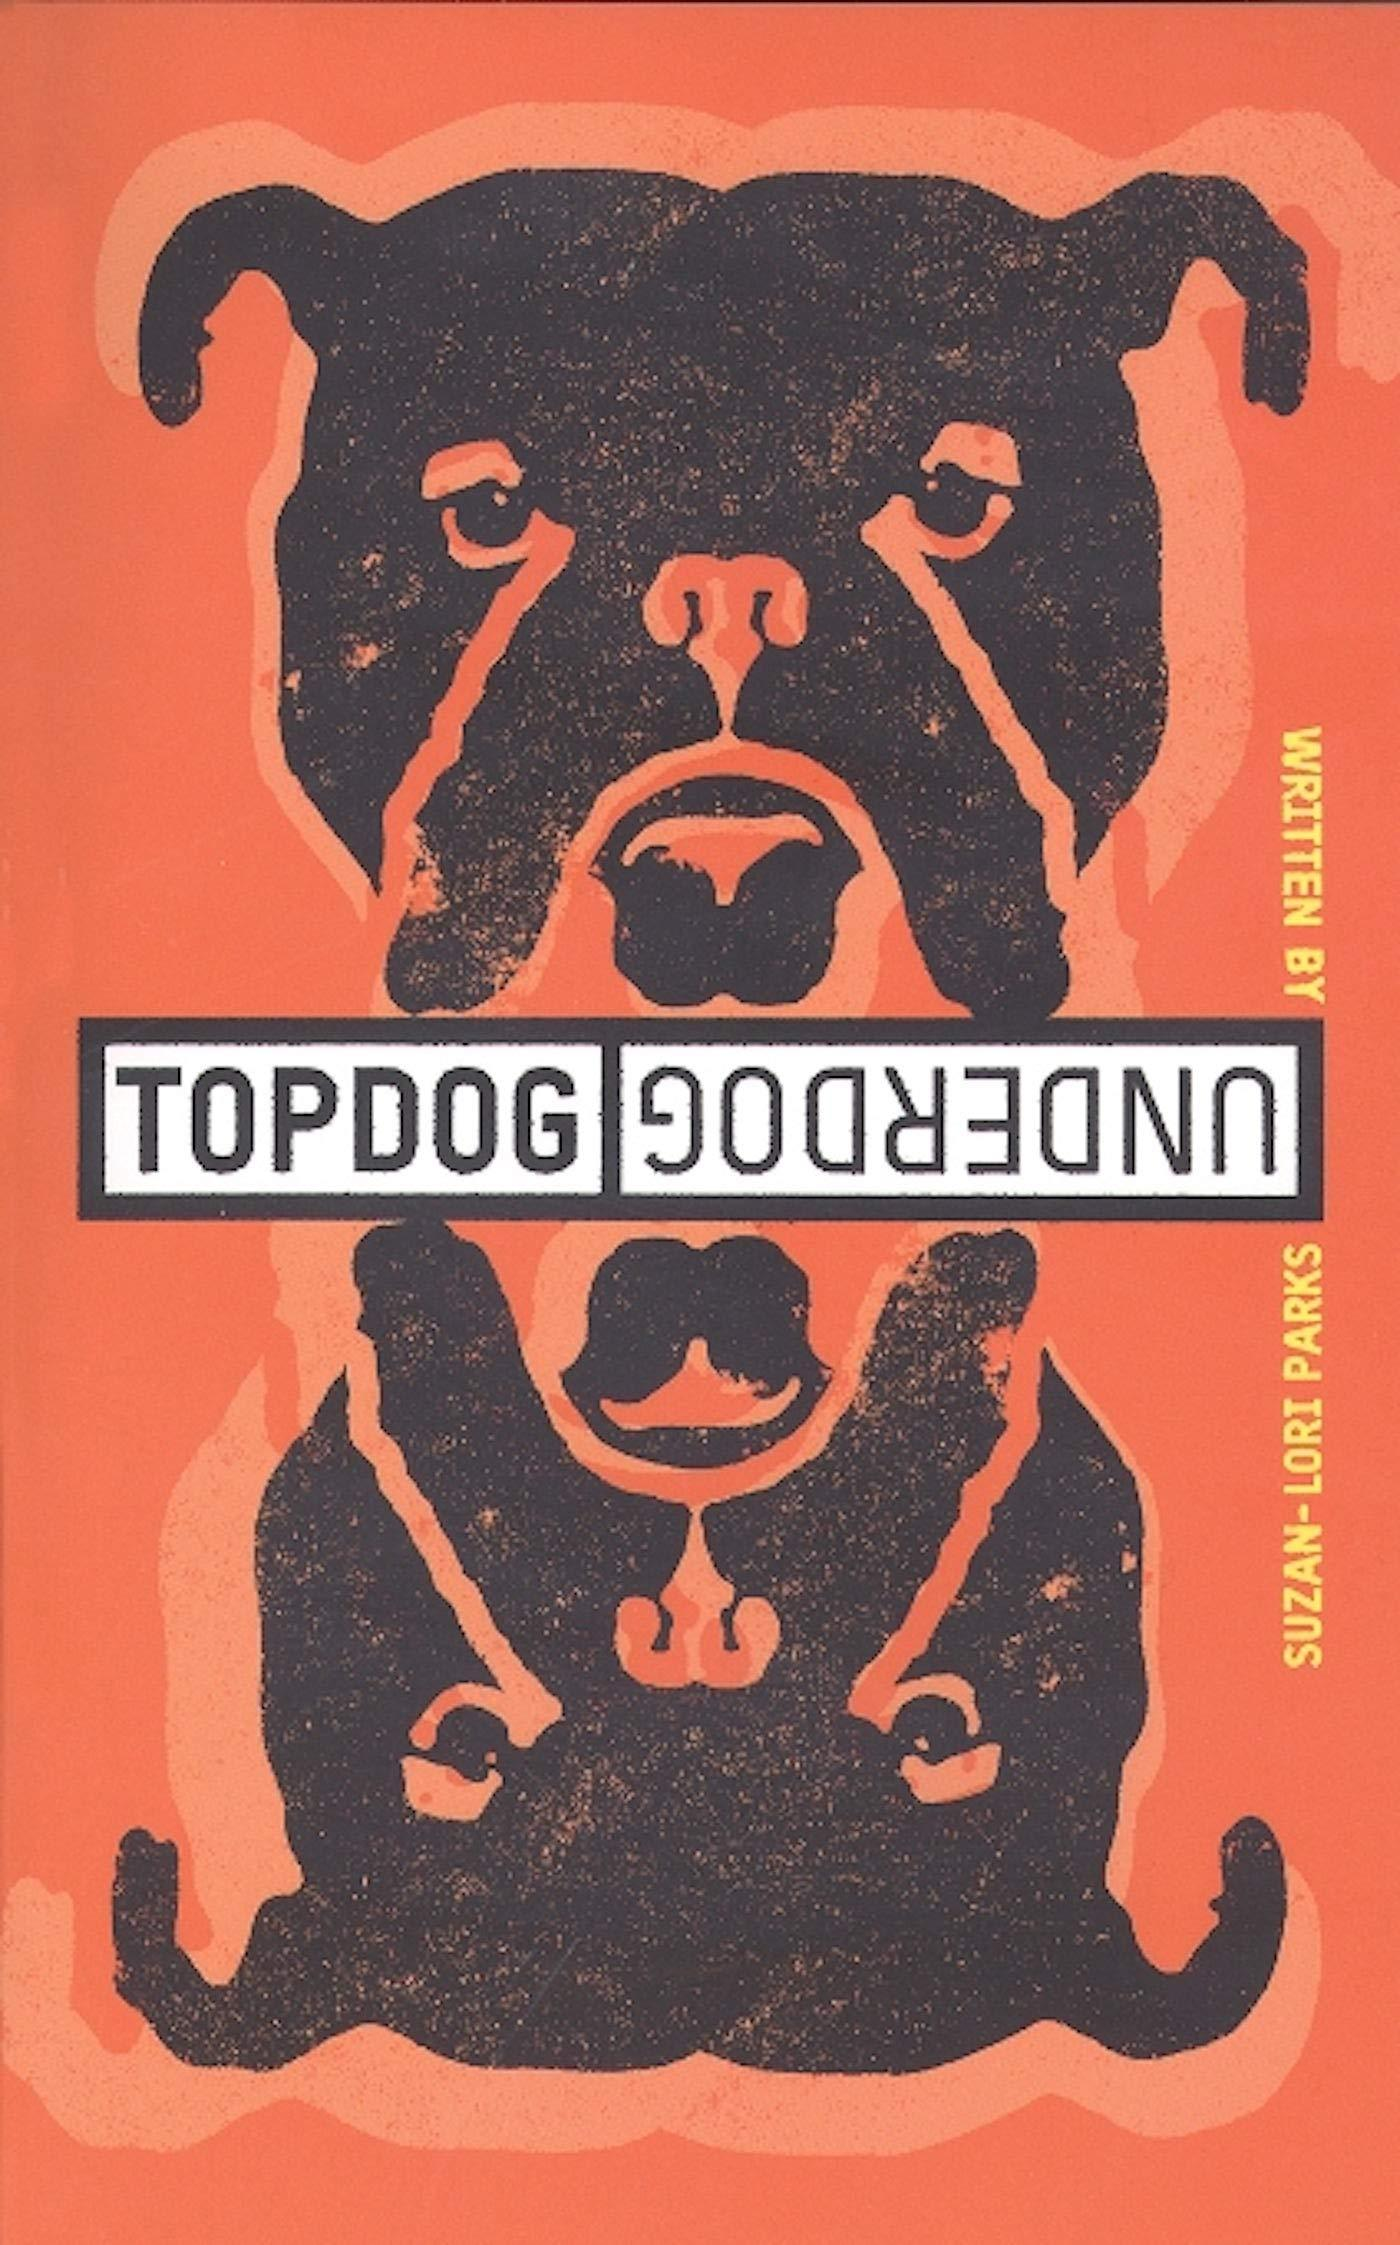 Book cover for Topdog Underdog